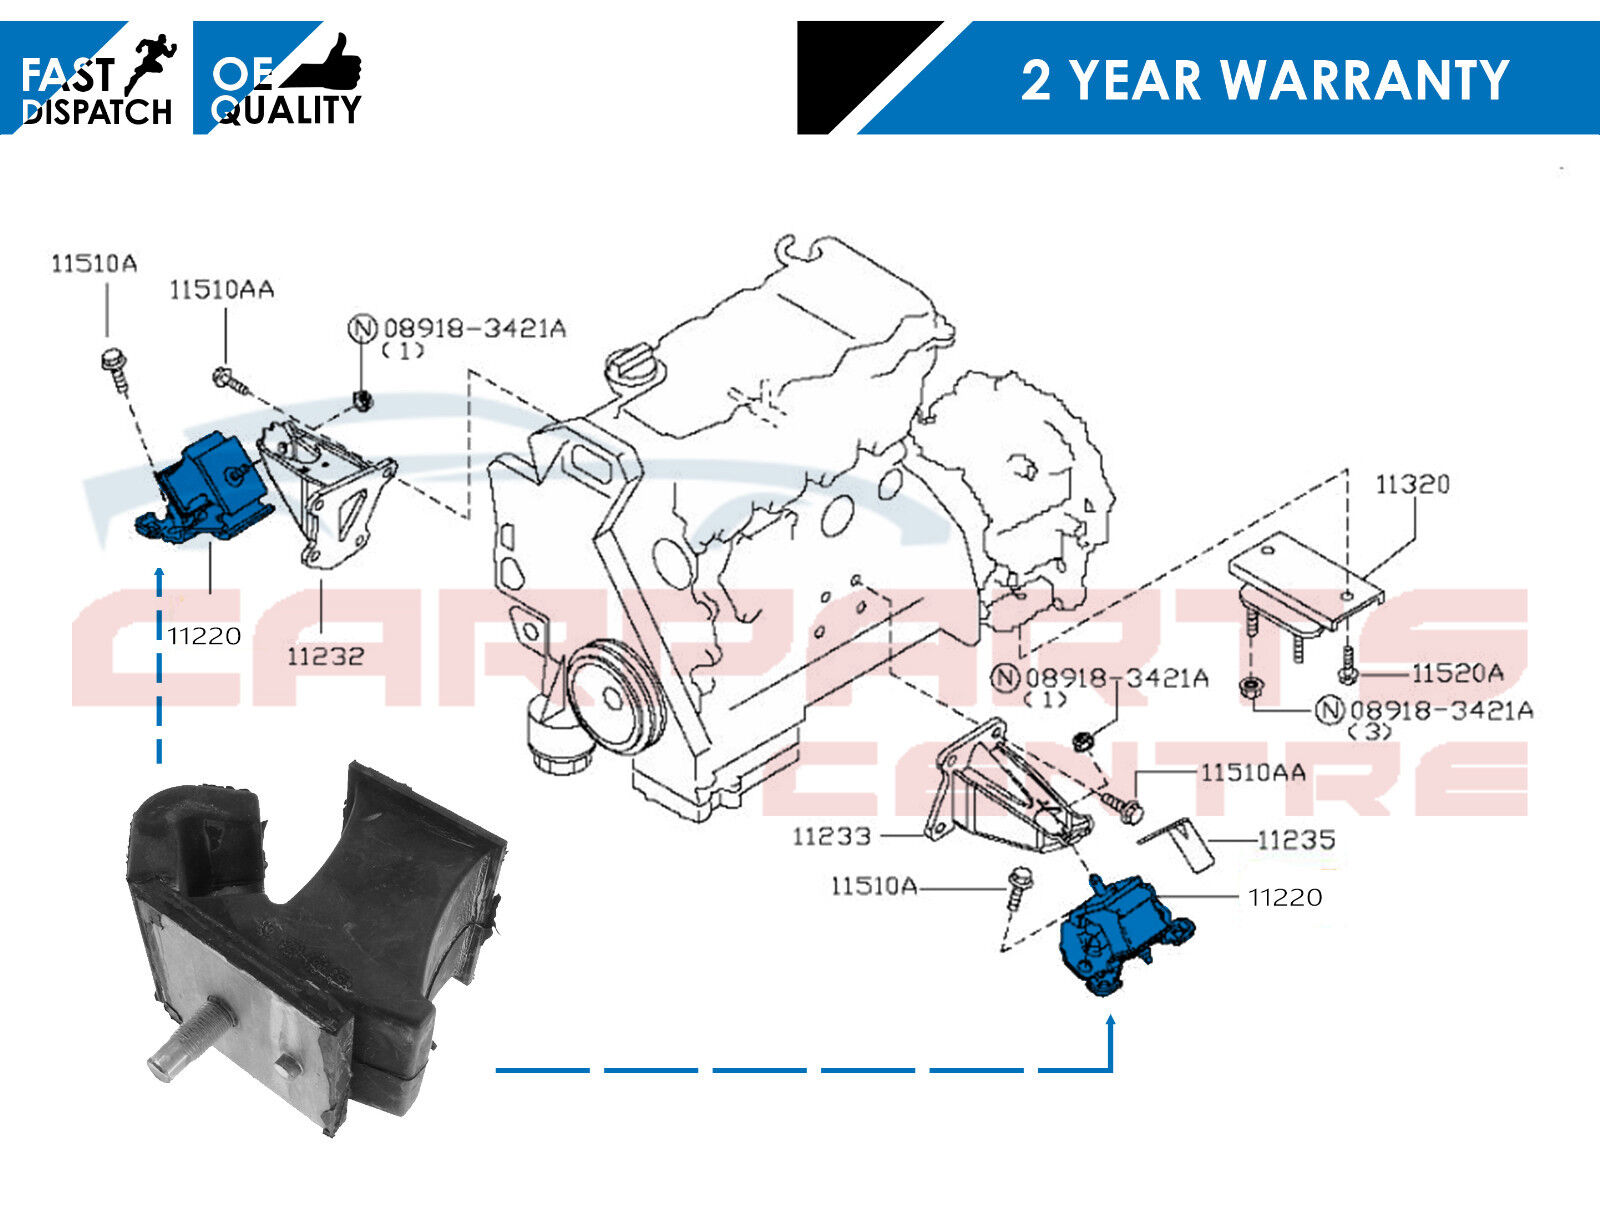 navara engine diagram yuk convertigo de \u2022 nissan frontier magnaflow exhaust for nissan navara d40 pathfinder 2 5 r51 yd25ddti front engine rh ebay co uk navara d40 engine bay diagram navara d40 engine bay diagram